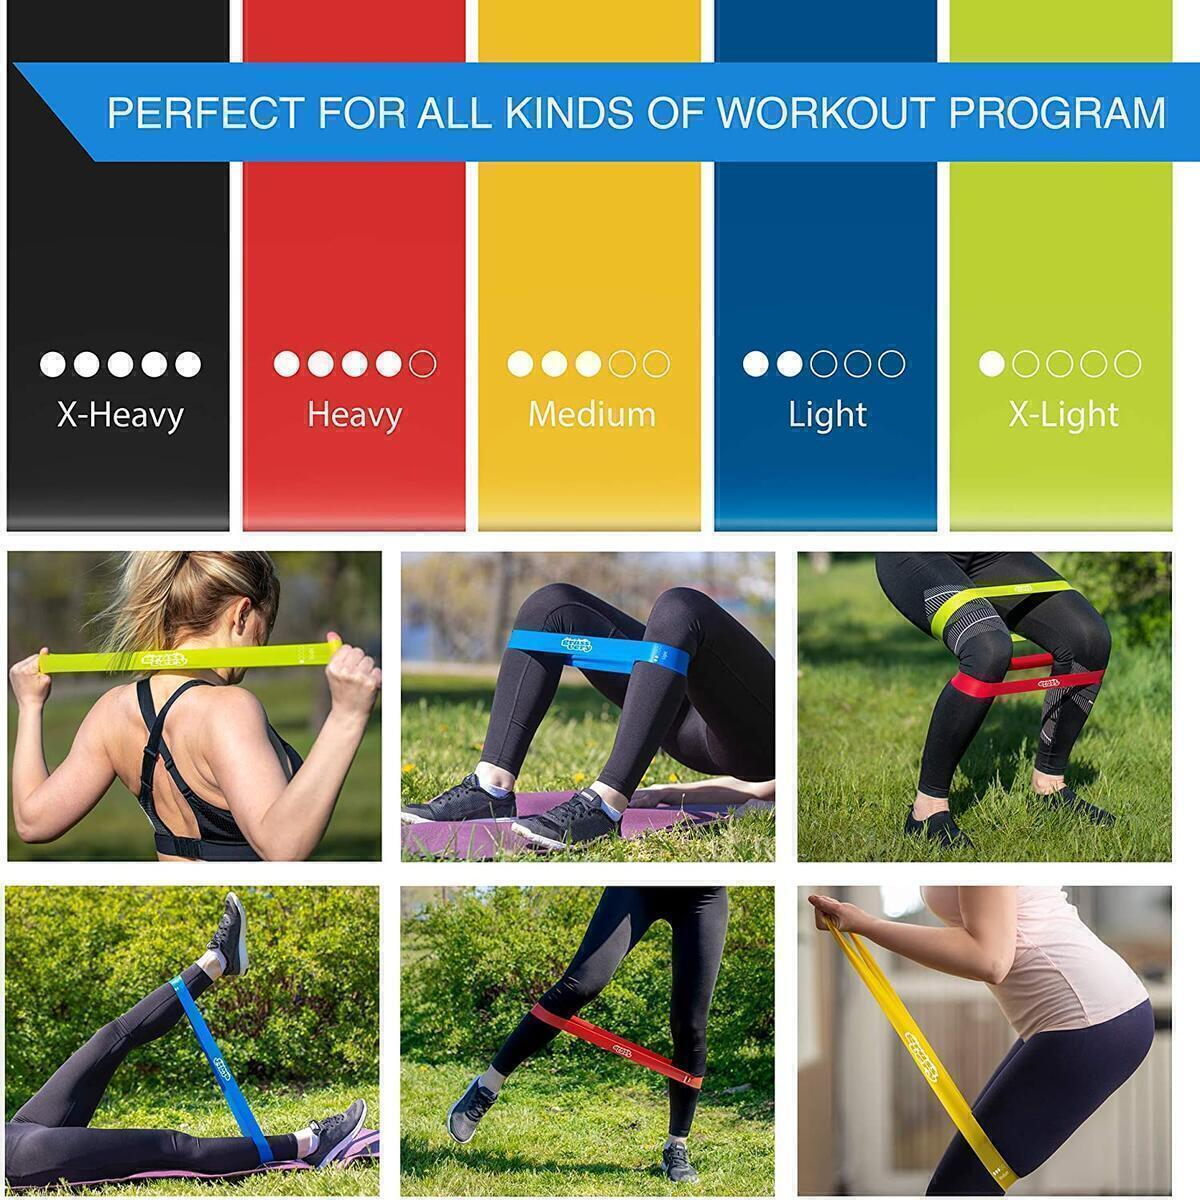 GRASSVERY Rubber Resistance Loop Bands for Home Fitness, Leg & Butt Exercise, Stretching and Strength Training – Resistance Natural Latex Workout Bands for Booty Workout, Strengthening Muscle